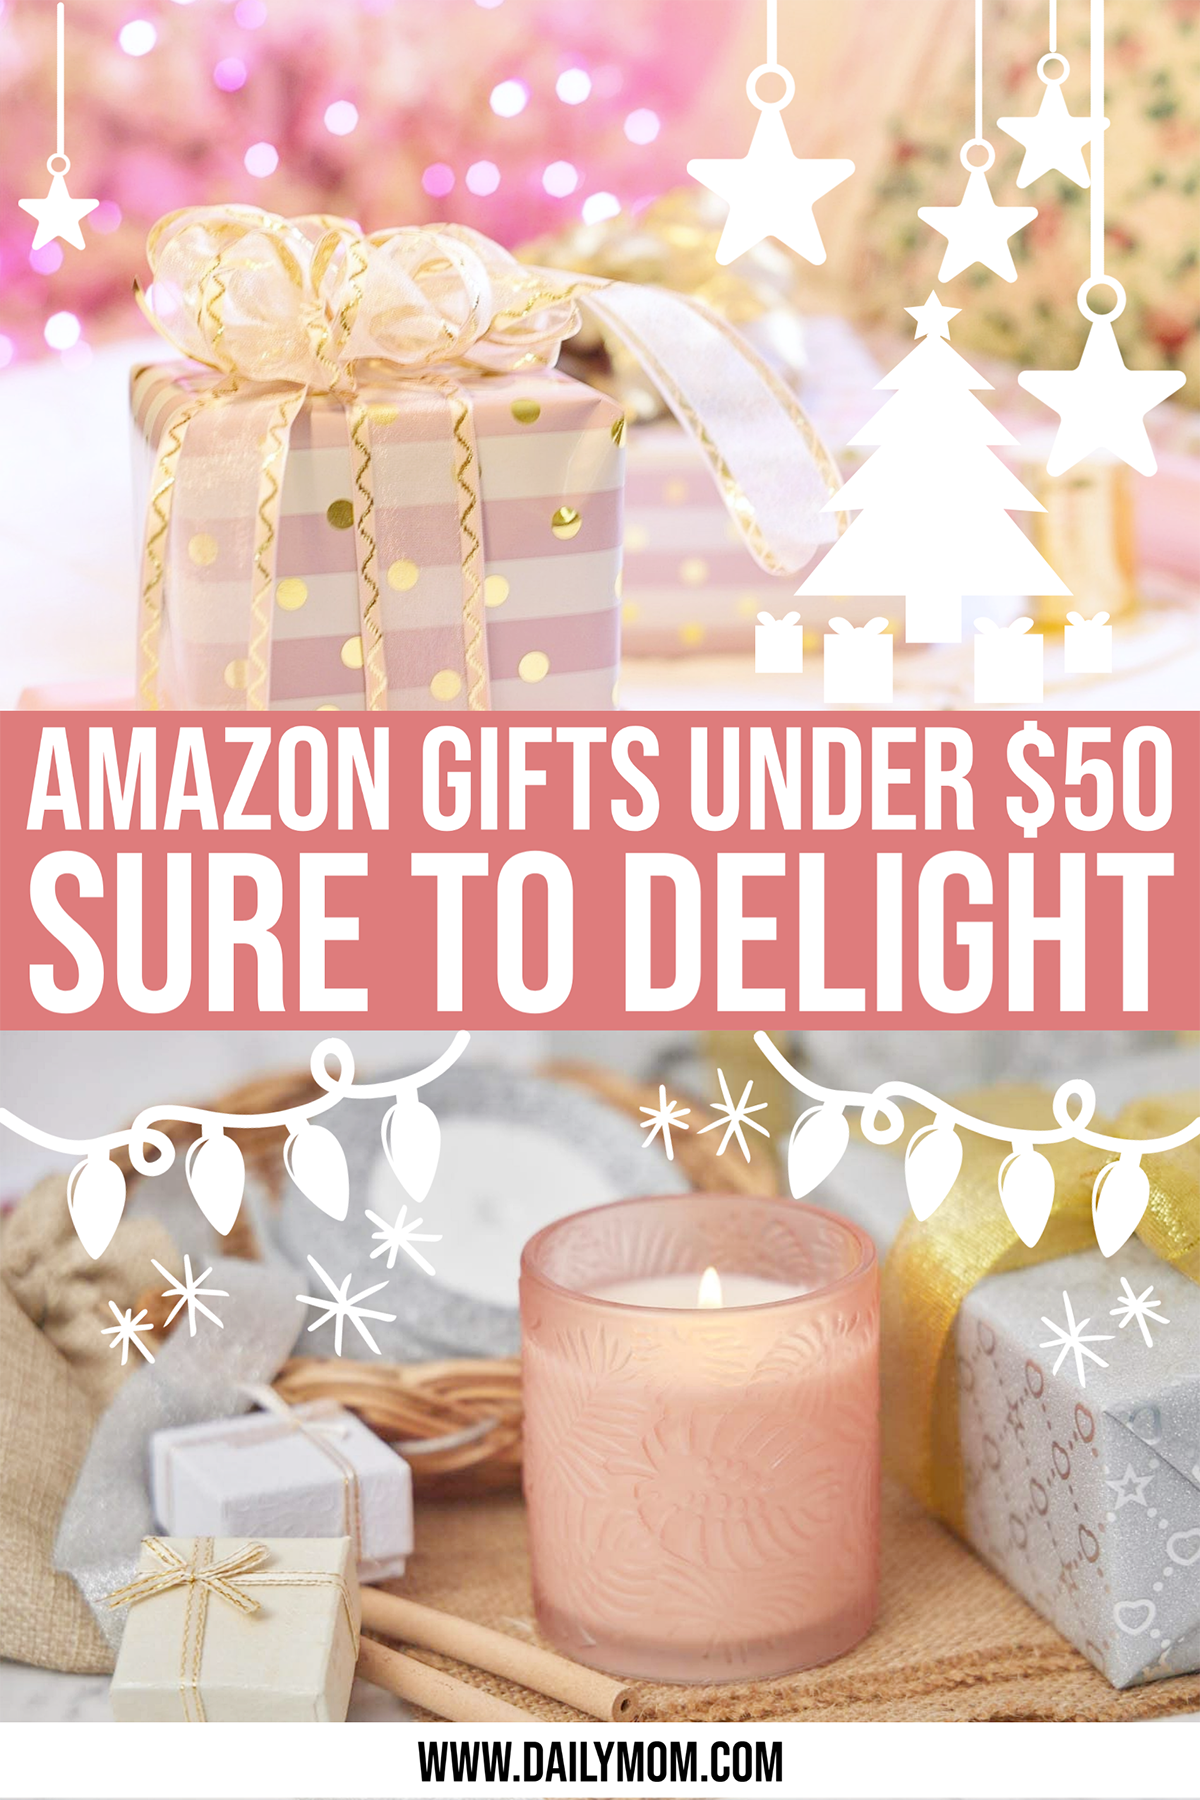 daily-mom-parent-portal-amazon-gifts-under-$50